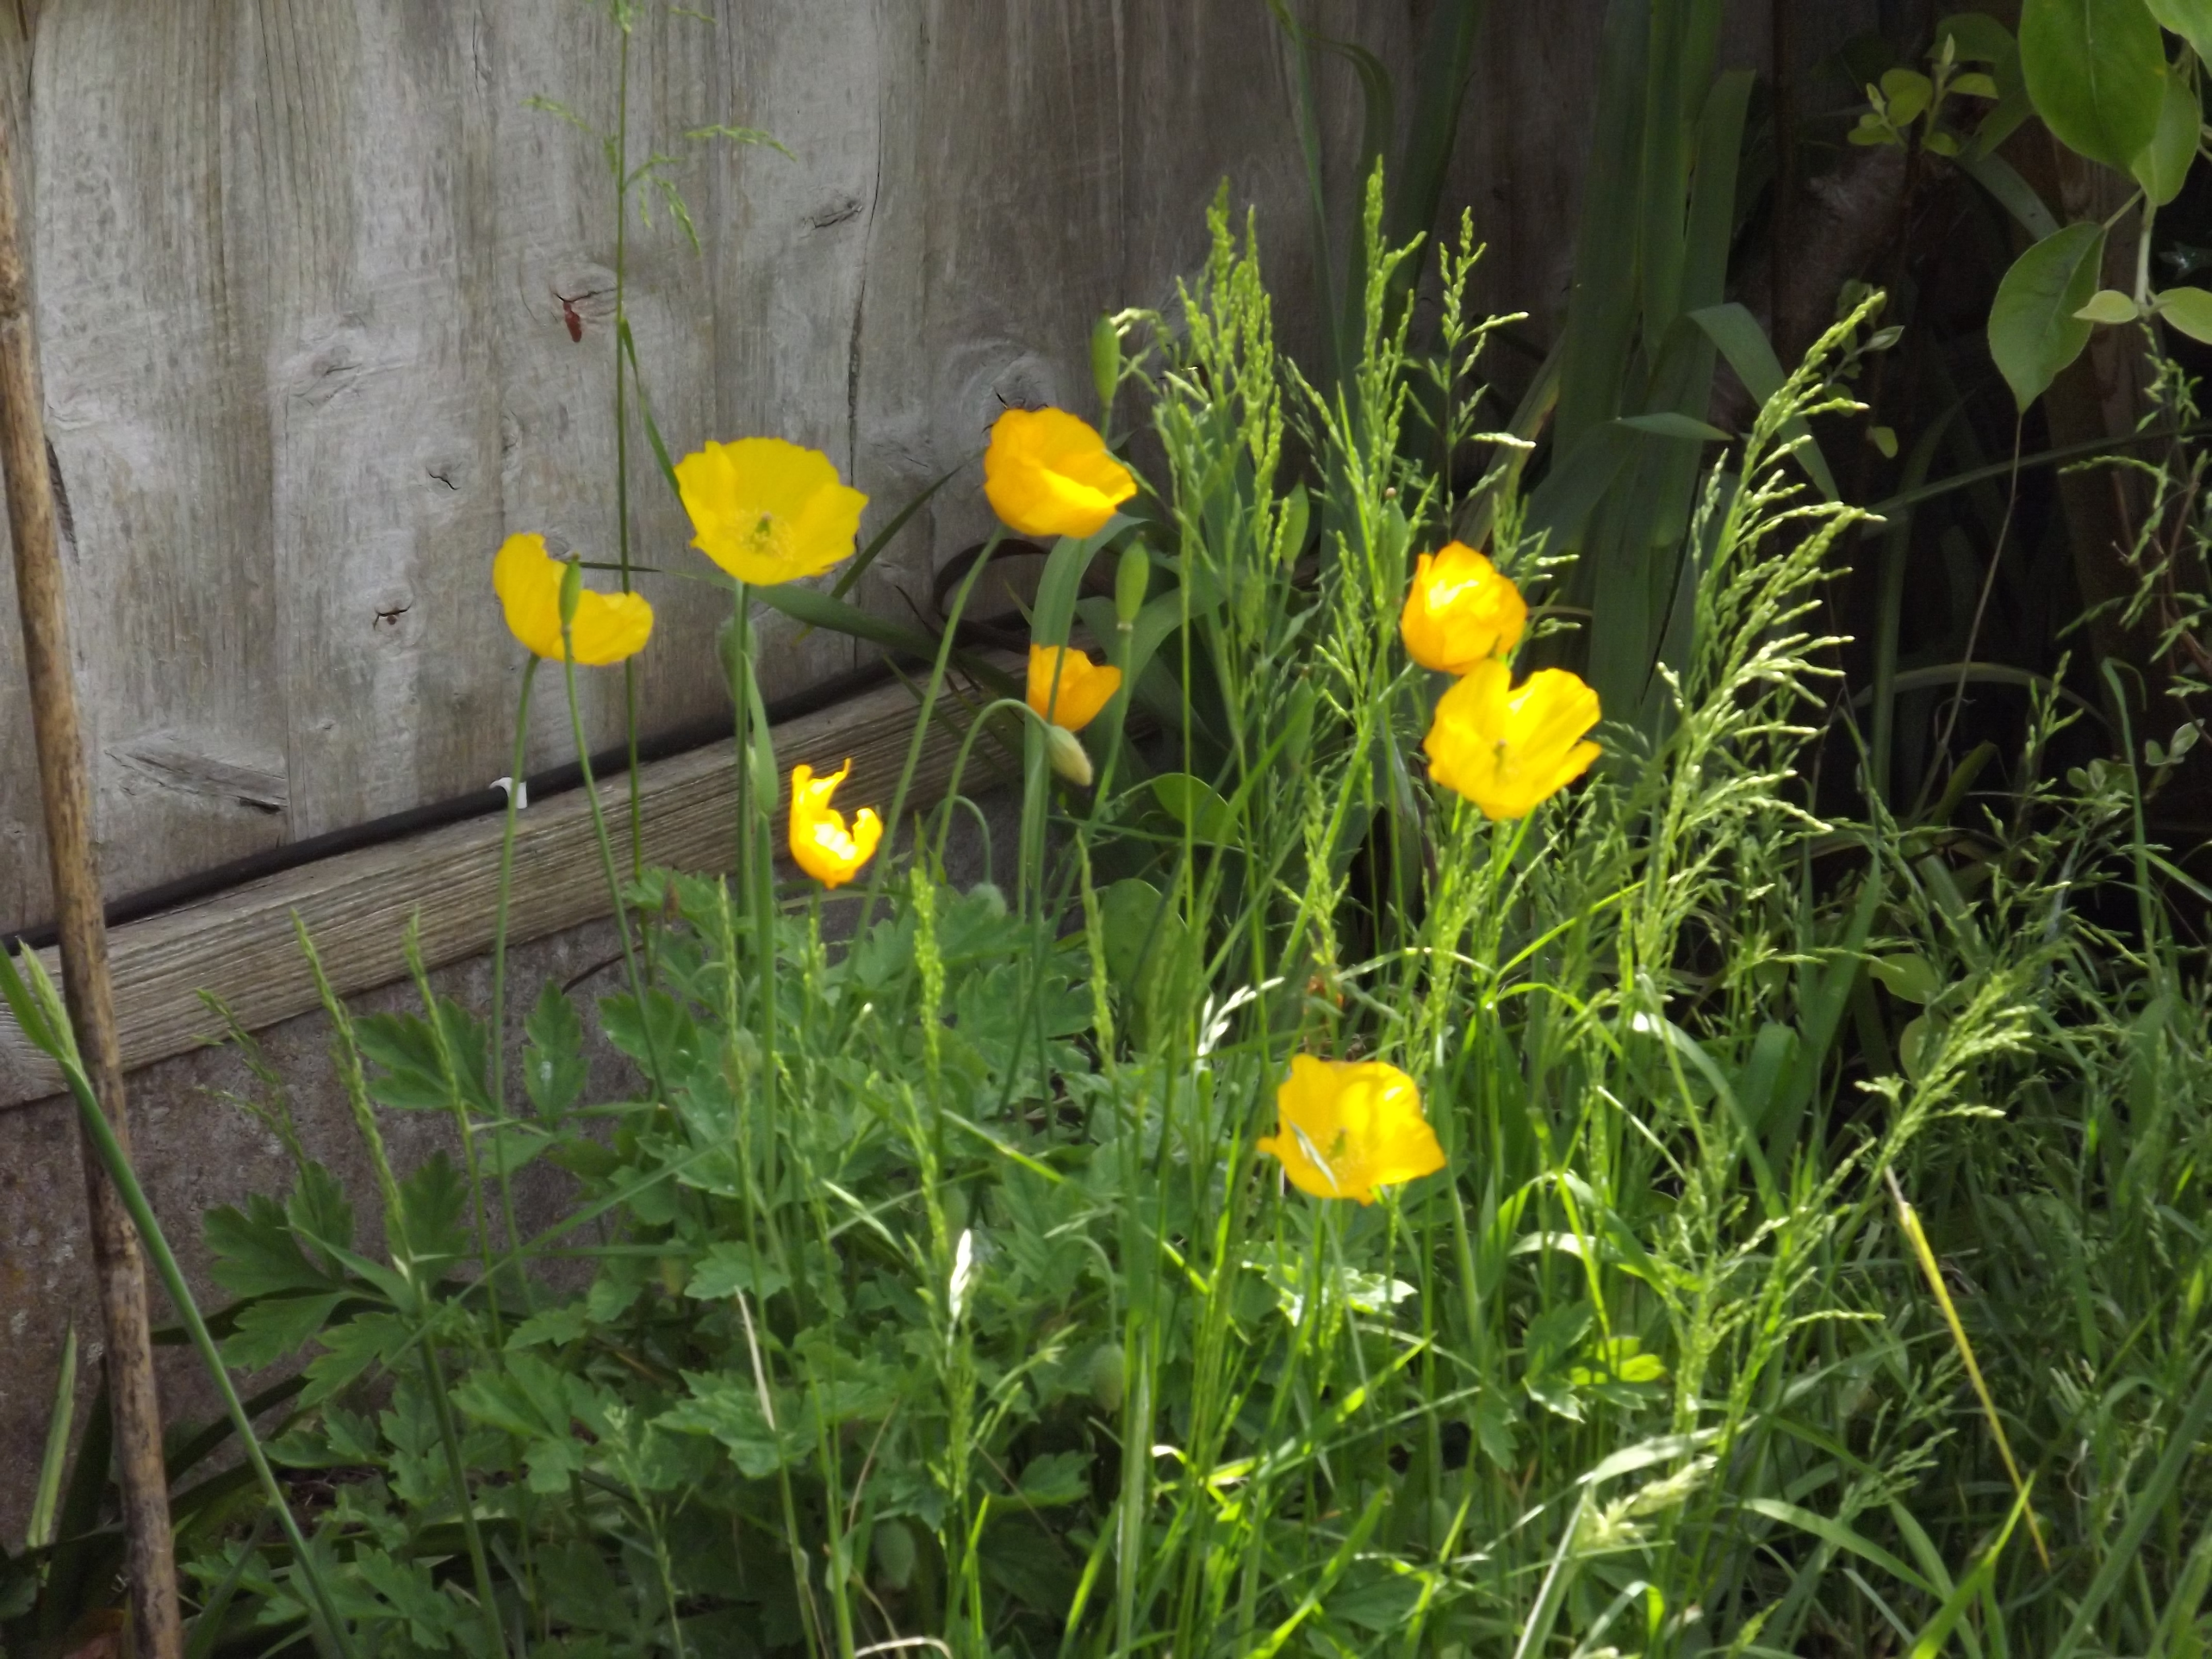 clump of Weslh poppies